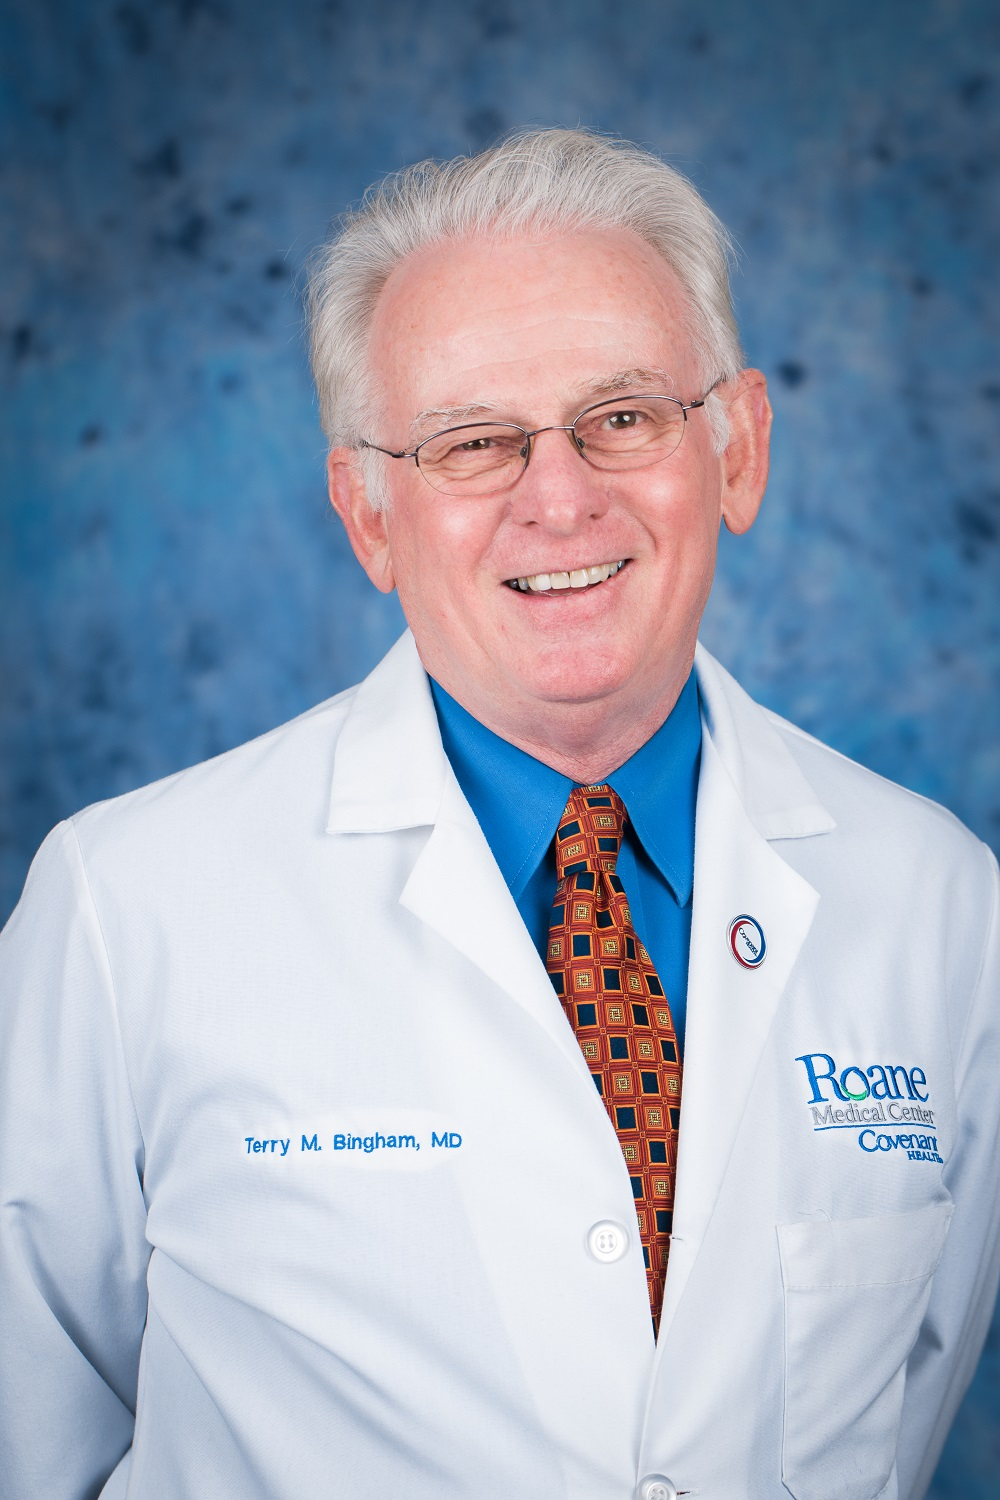 Terry M. Bingham, MD of Roane Surgical Group